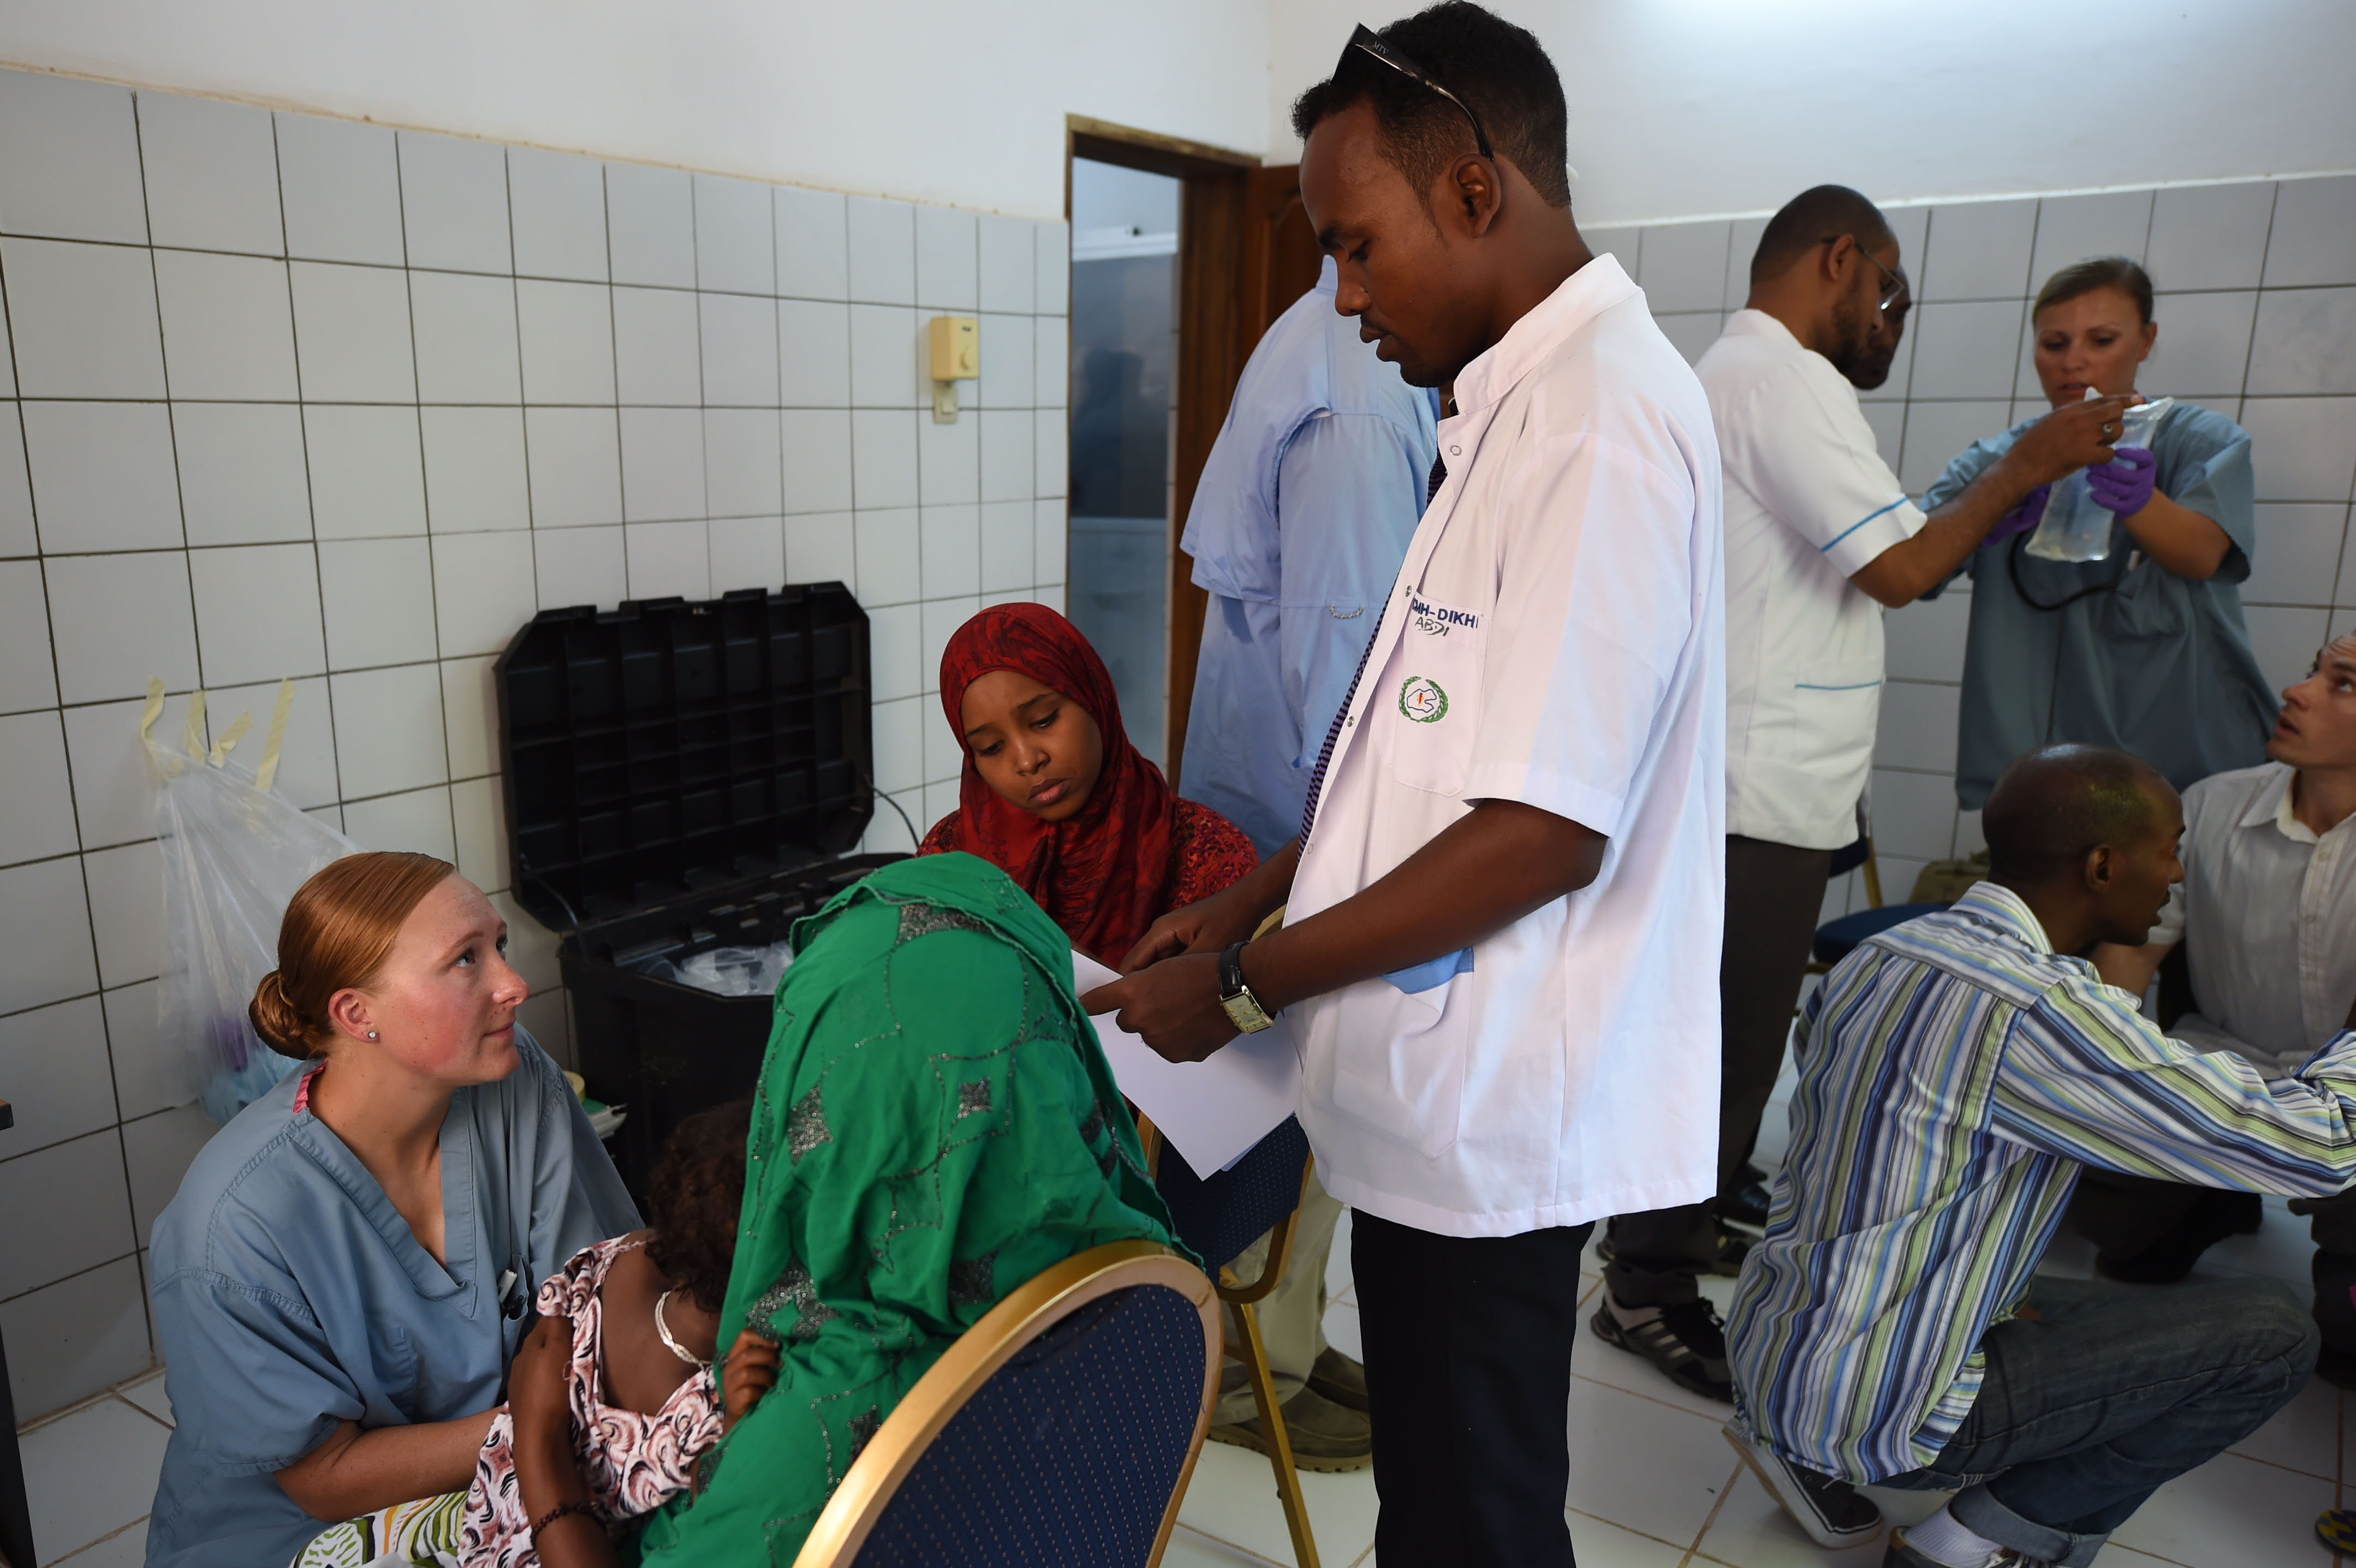 DIKHIL, Djibouti – Soldiers from the 403rd Civil Affairs Battalion work with Djibouti Ministry of Health, Cuban medical personnel and translators to provide treatment to the people during a medical civic action program at Dikhil, Djibouti, May 11, 2016. The medical team spent 10 hours together treating around 140 people while comparing and exchanging medical knowledge for the illnesses prominent in the region. (U.S. Air Force photo by Staff Sgt. Tiffany DeNault)